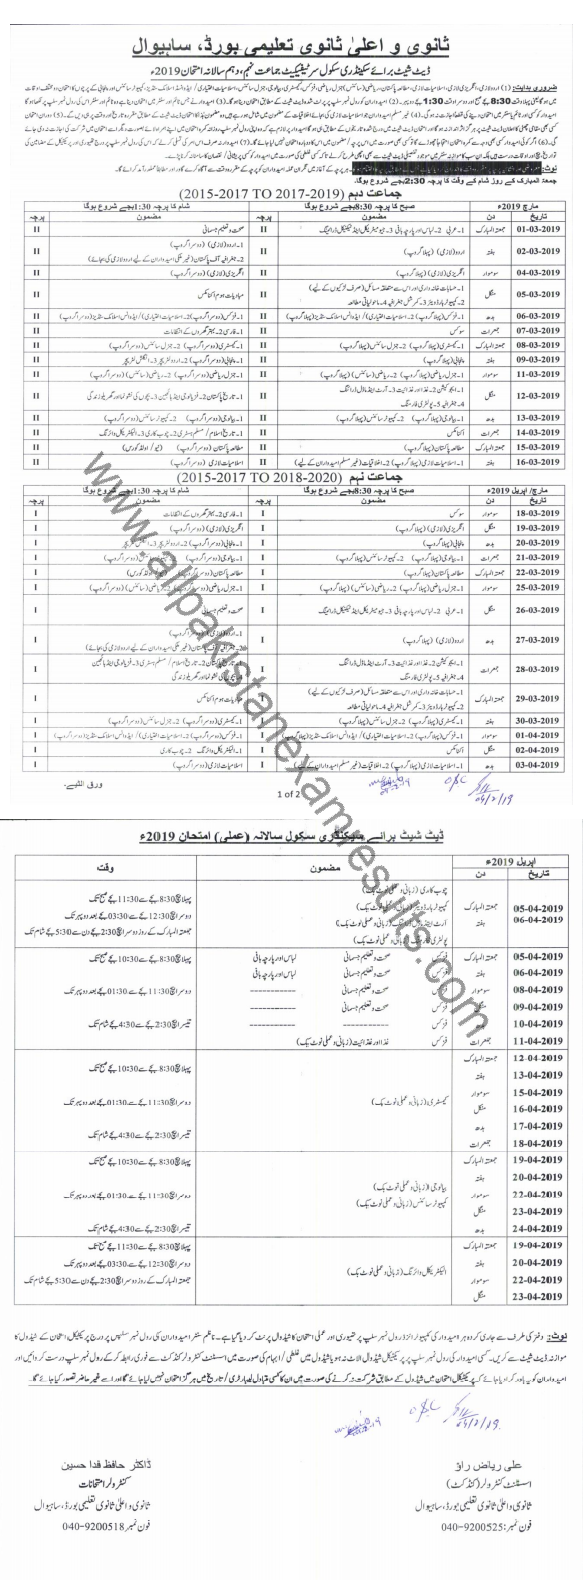 BISE Sahiwal 10th Class Date Sheet 2019